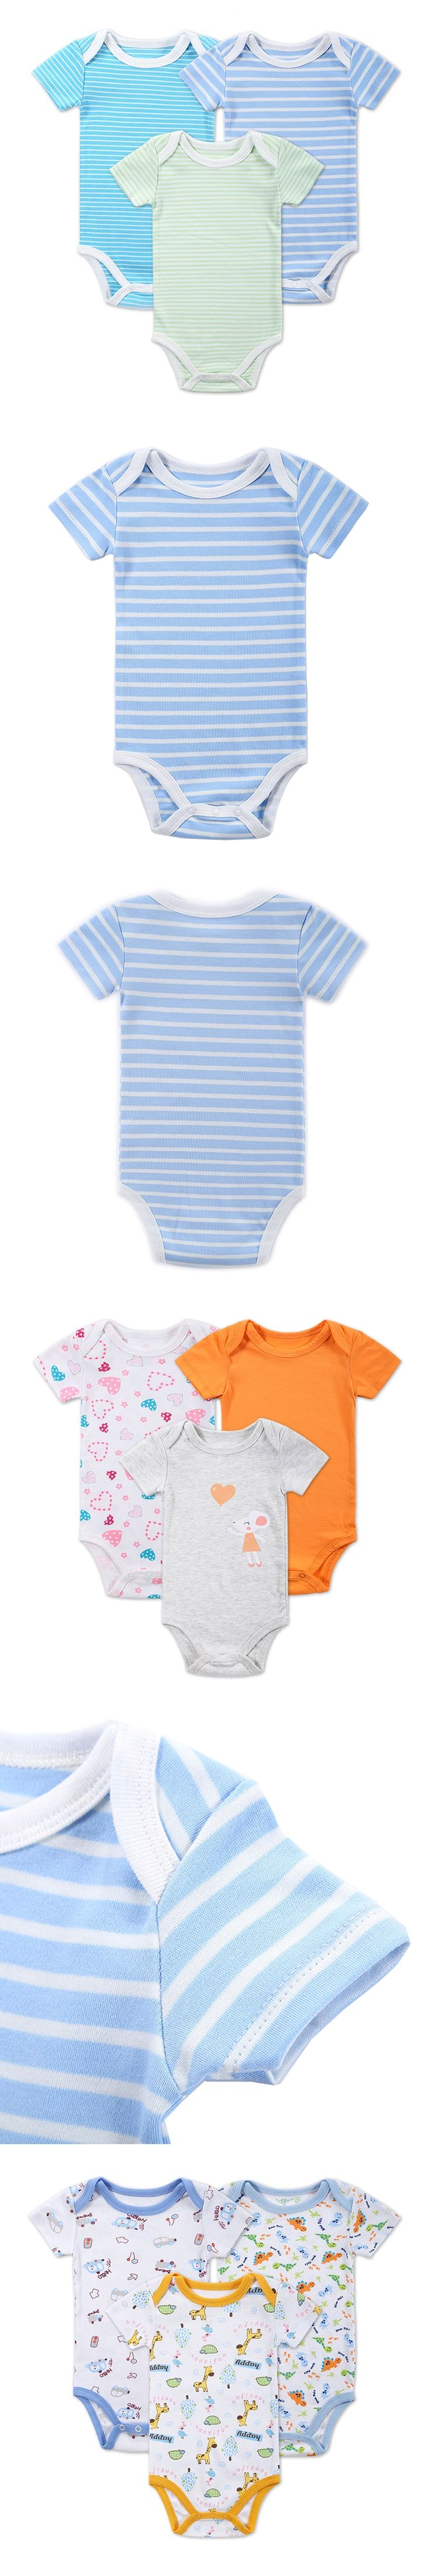 25 best Baby Boys Clothing images on Pinterest